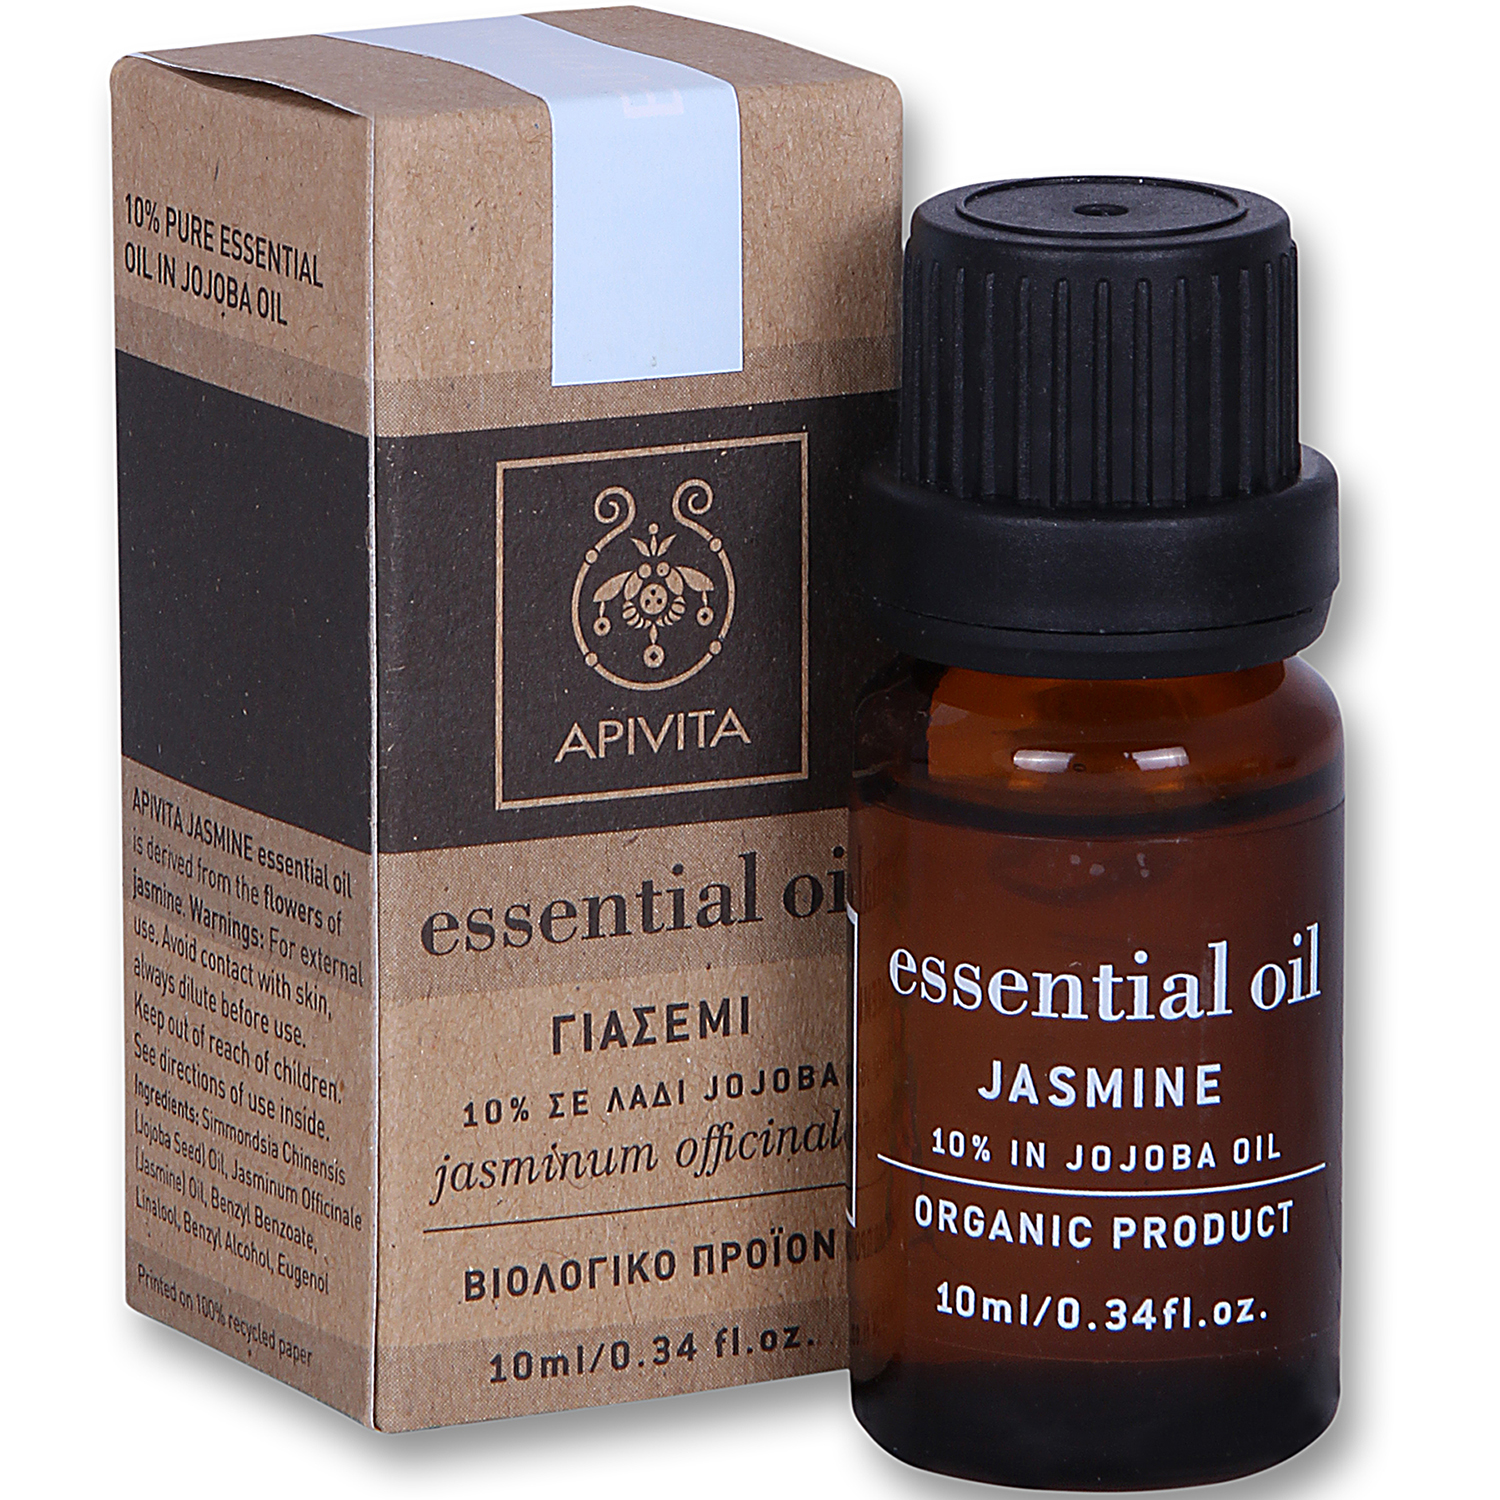 Apivita Essential Oil Γιασεμί 10ml